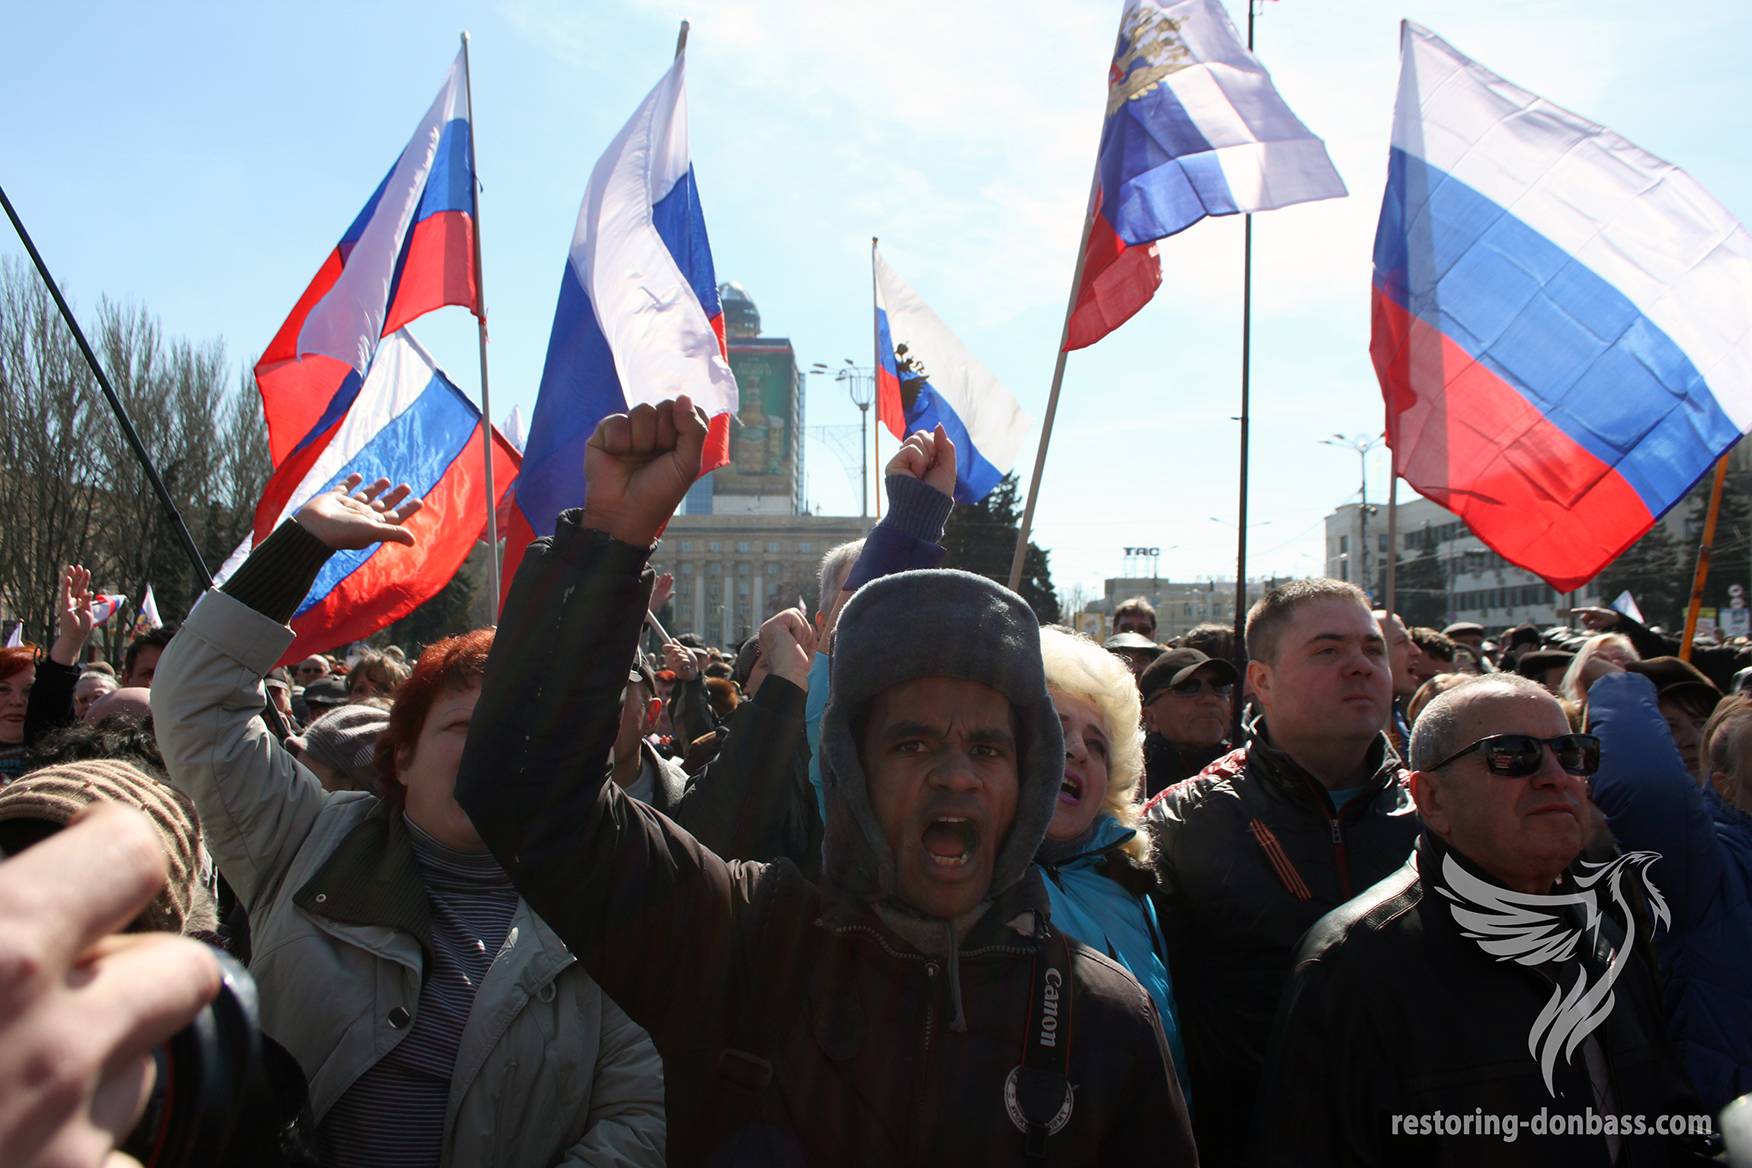 Rally on Lenin Square in Donetsk, March 22, 2014